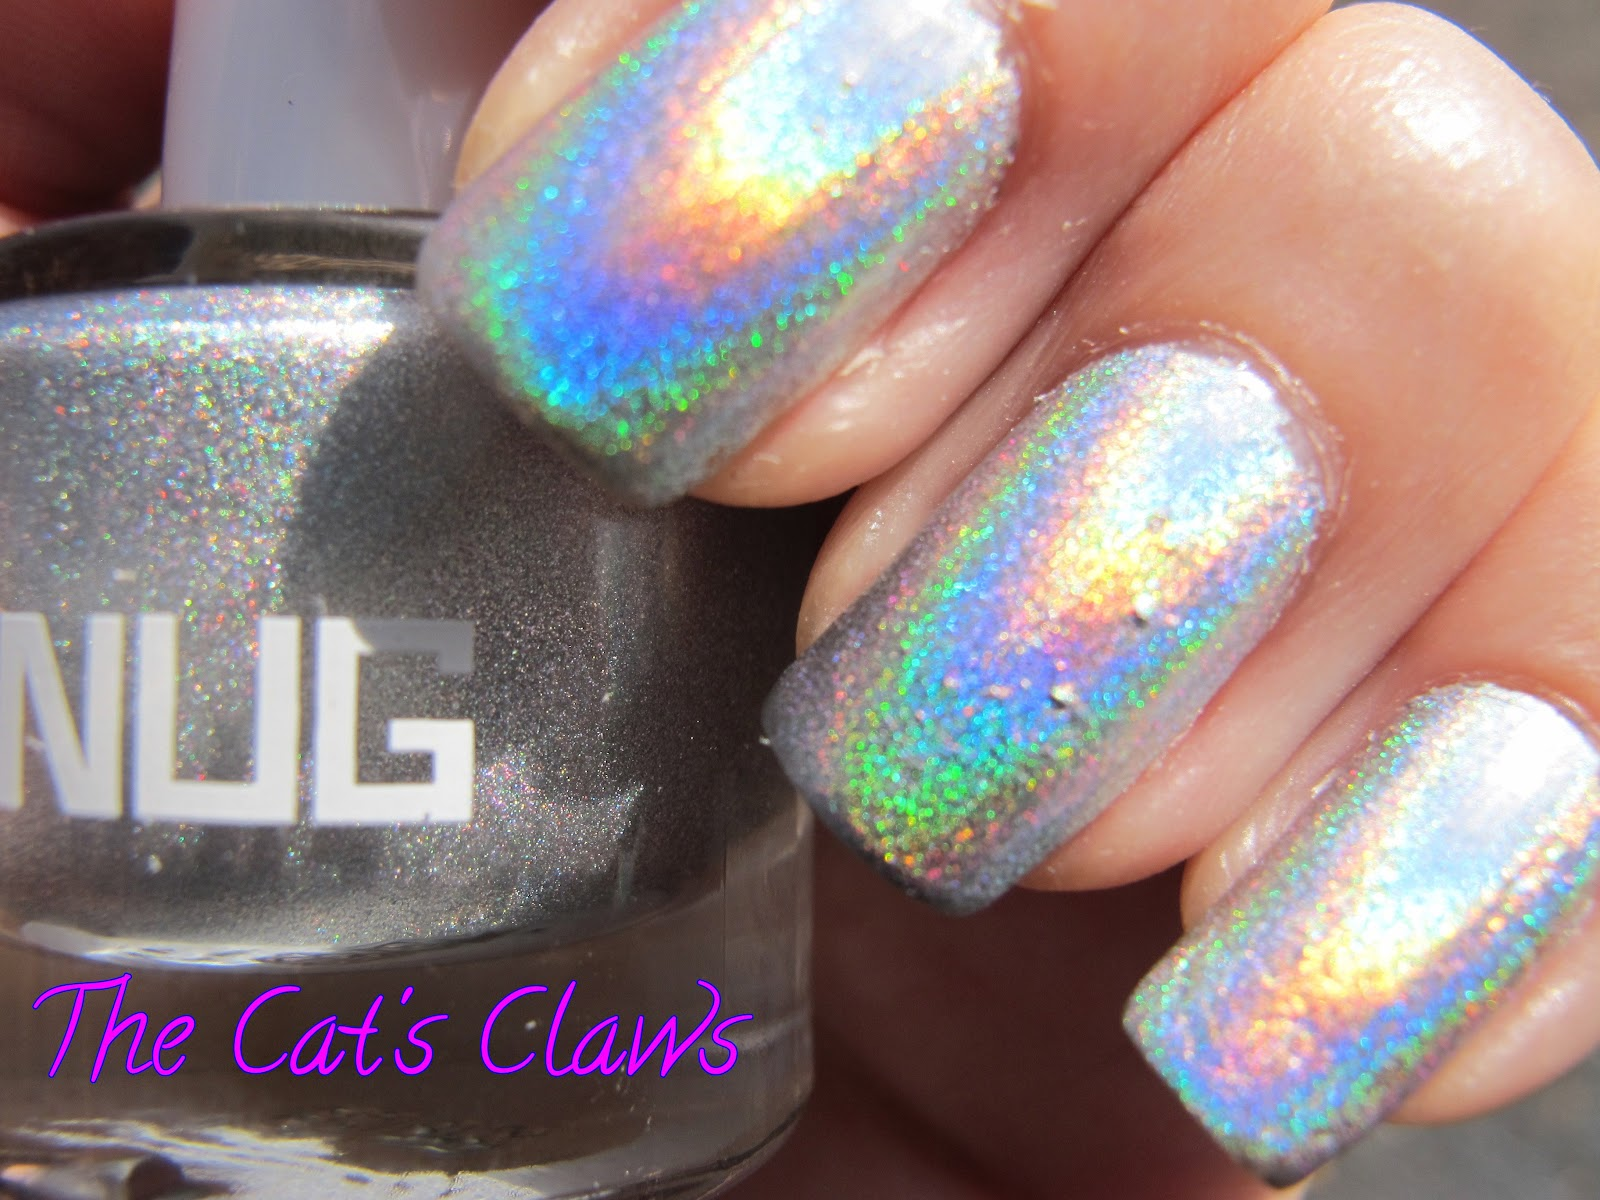 Holographic Nail Polish Chanel Hession Hairdressing